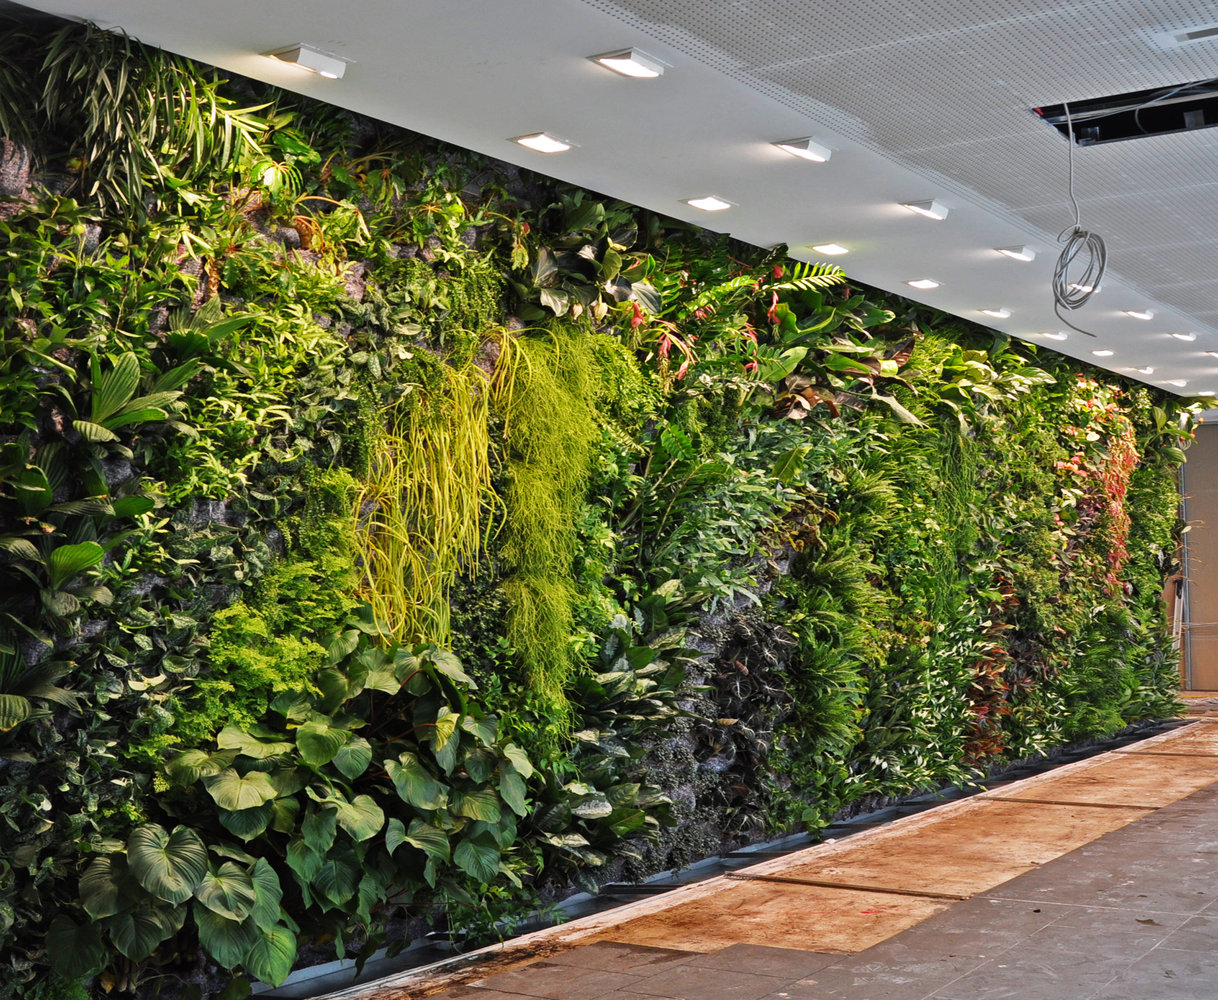 Fronius headquarters wels austria vertical garden Green walls vertical planting systems